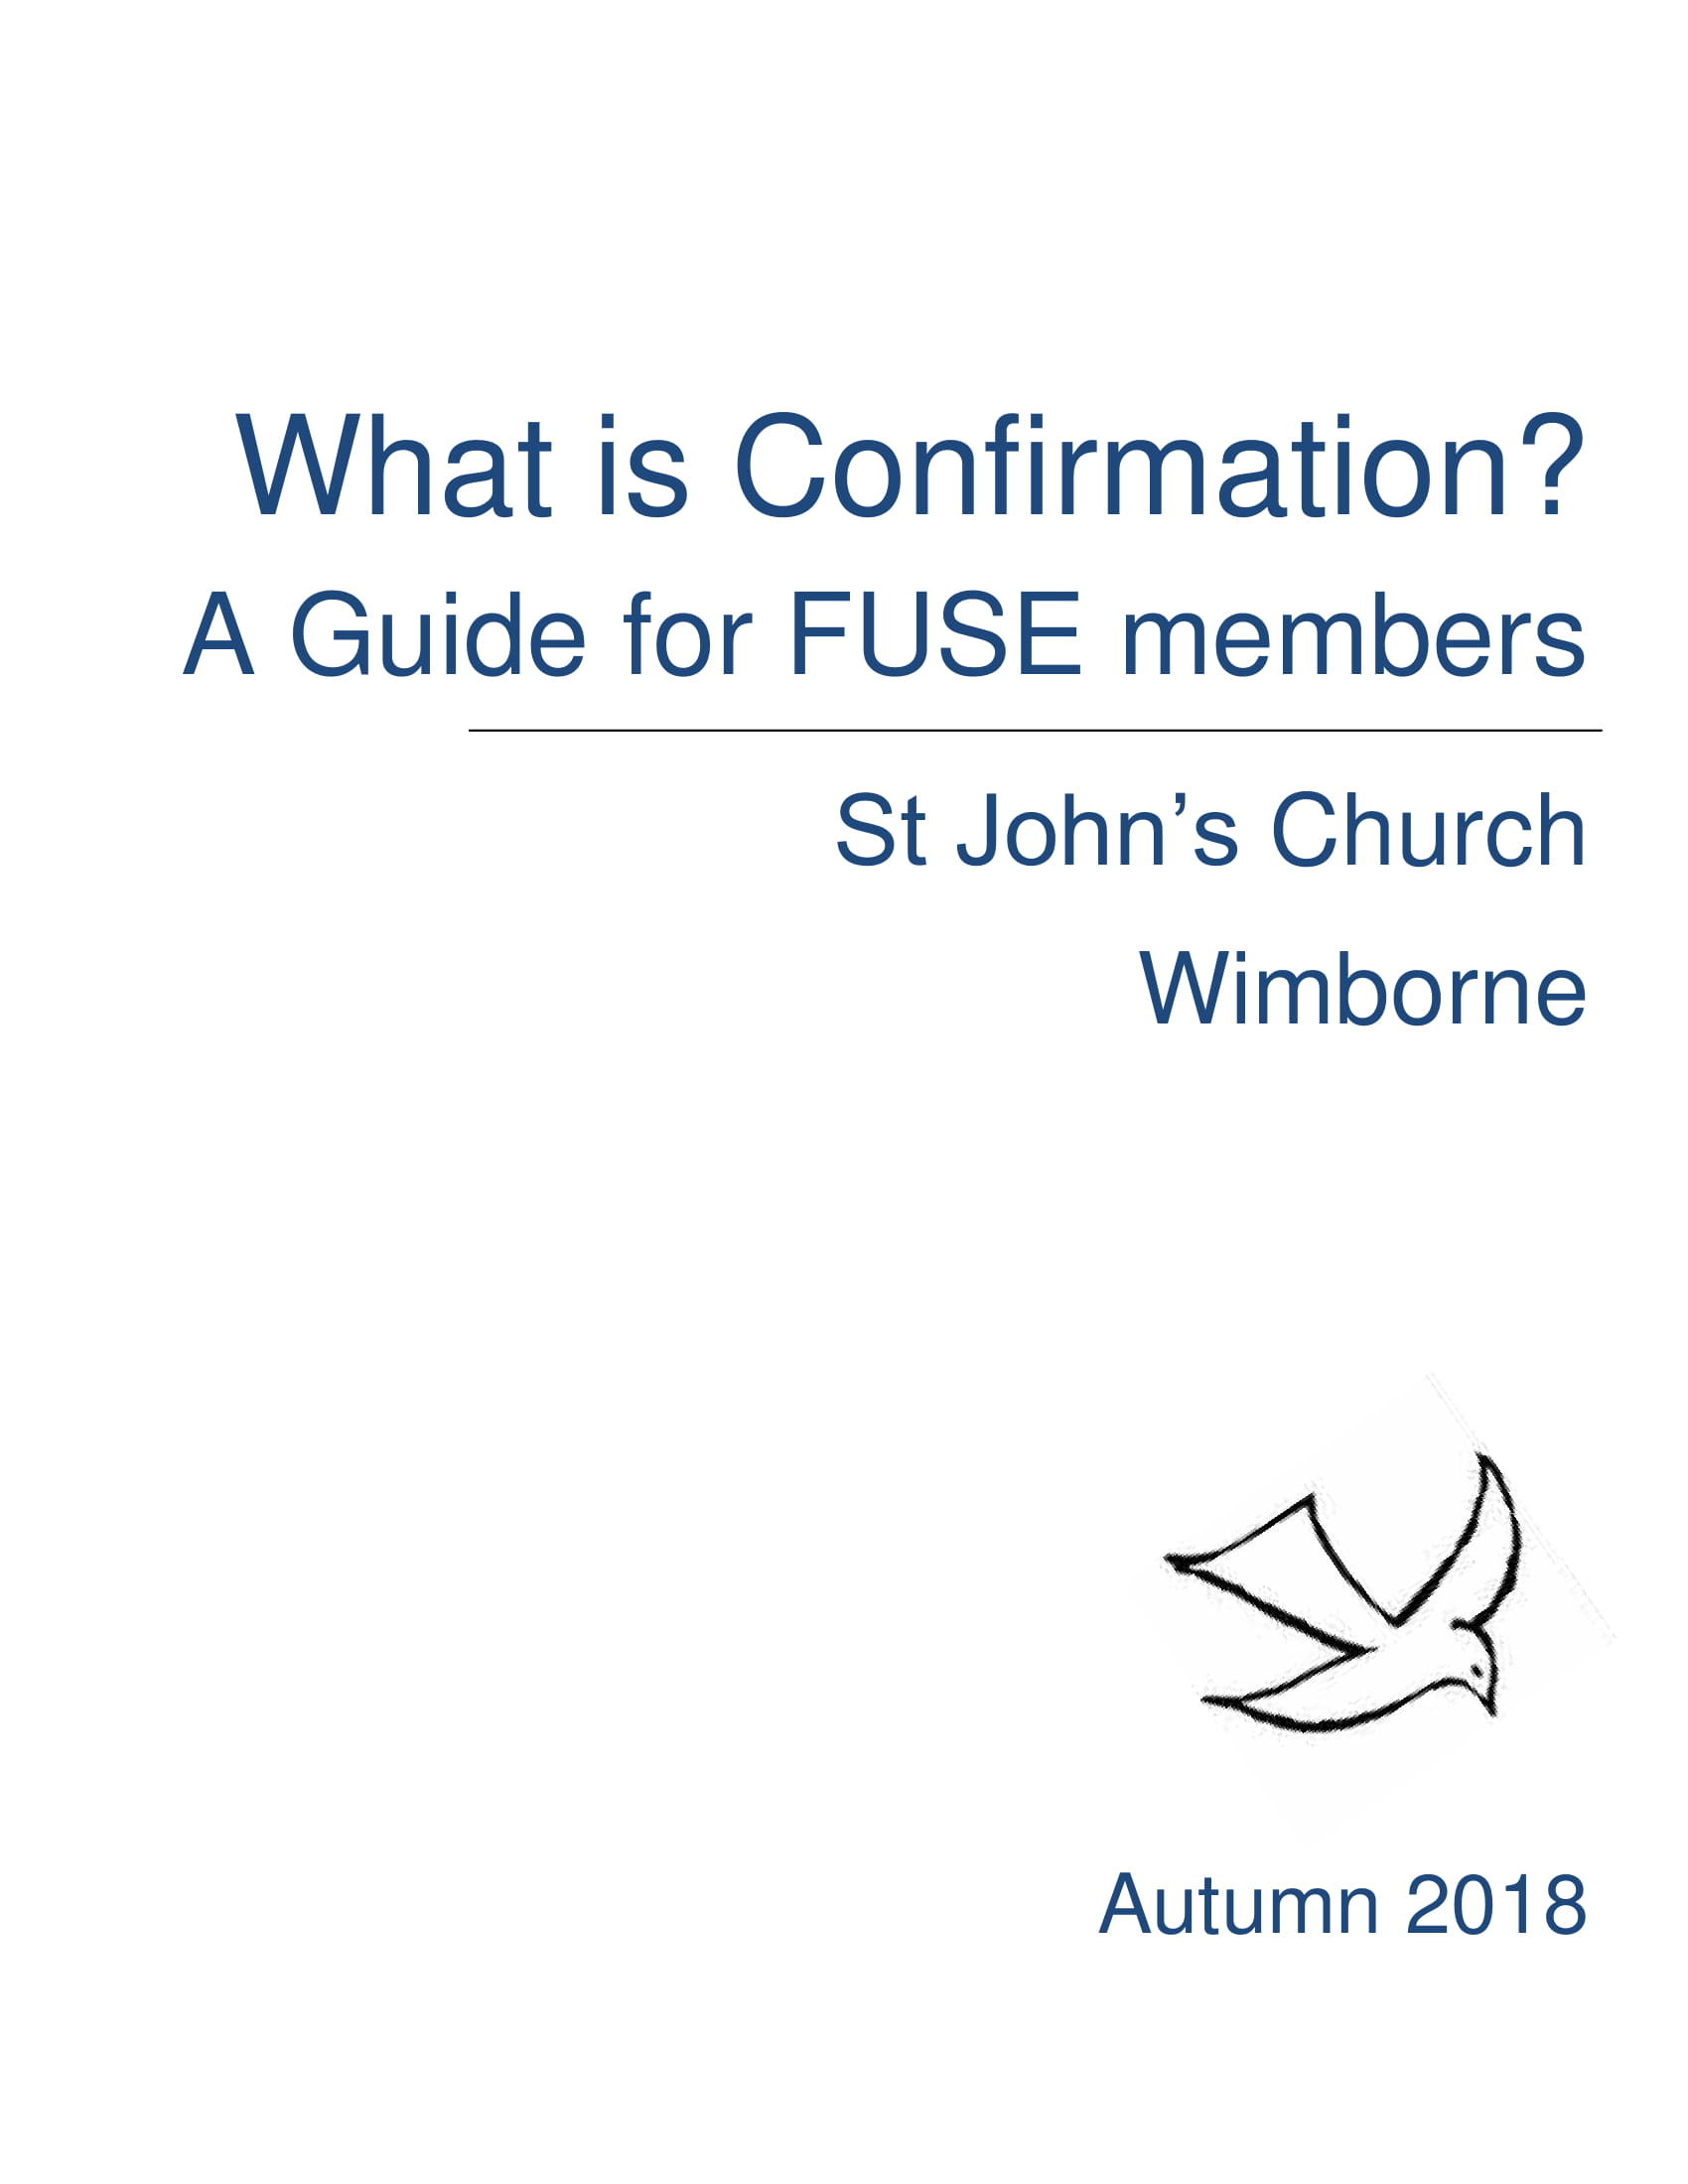 What is Confirmation? A Guide for FUSE Members pdf icon